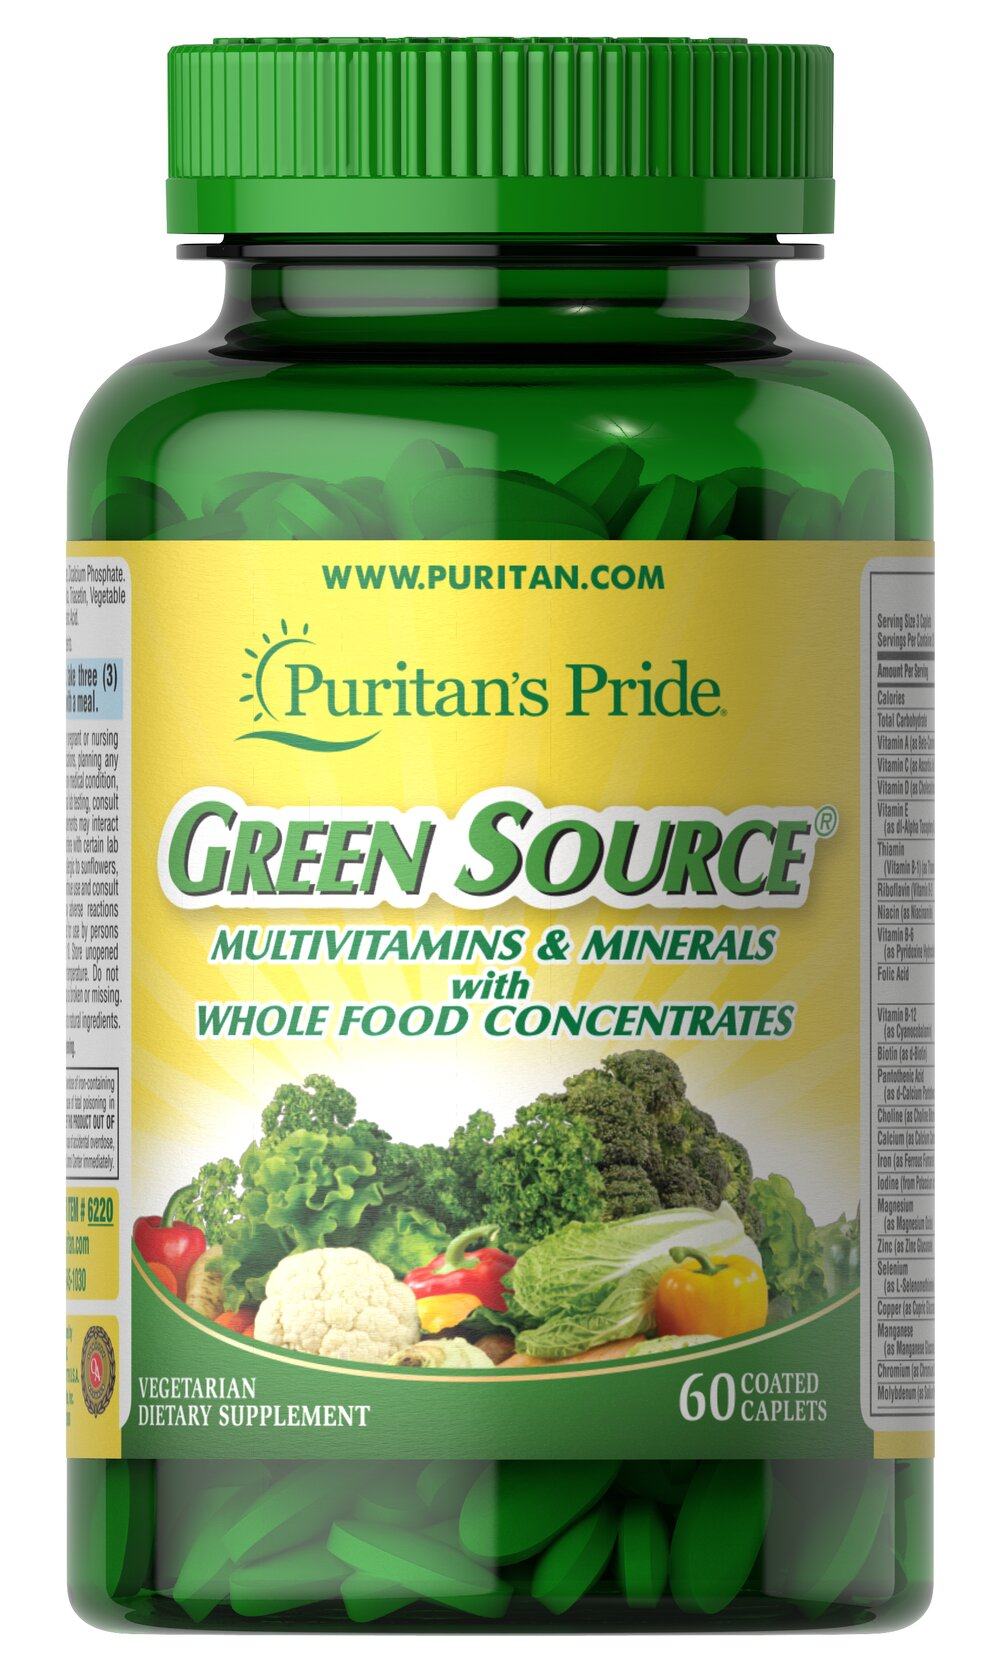 Green Source® Multivitamin & Minerals <p>This concentrated formula contains potent food source nutrients to provide essential vitamins, minerals, enzymes and amino acids. It also provides all the naturally occurring active constituents of whole foods.</p> 60 Caplets